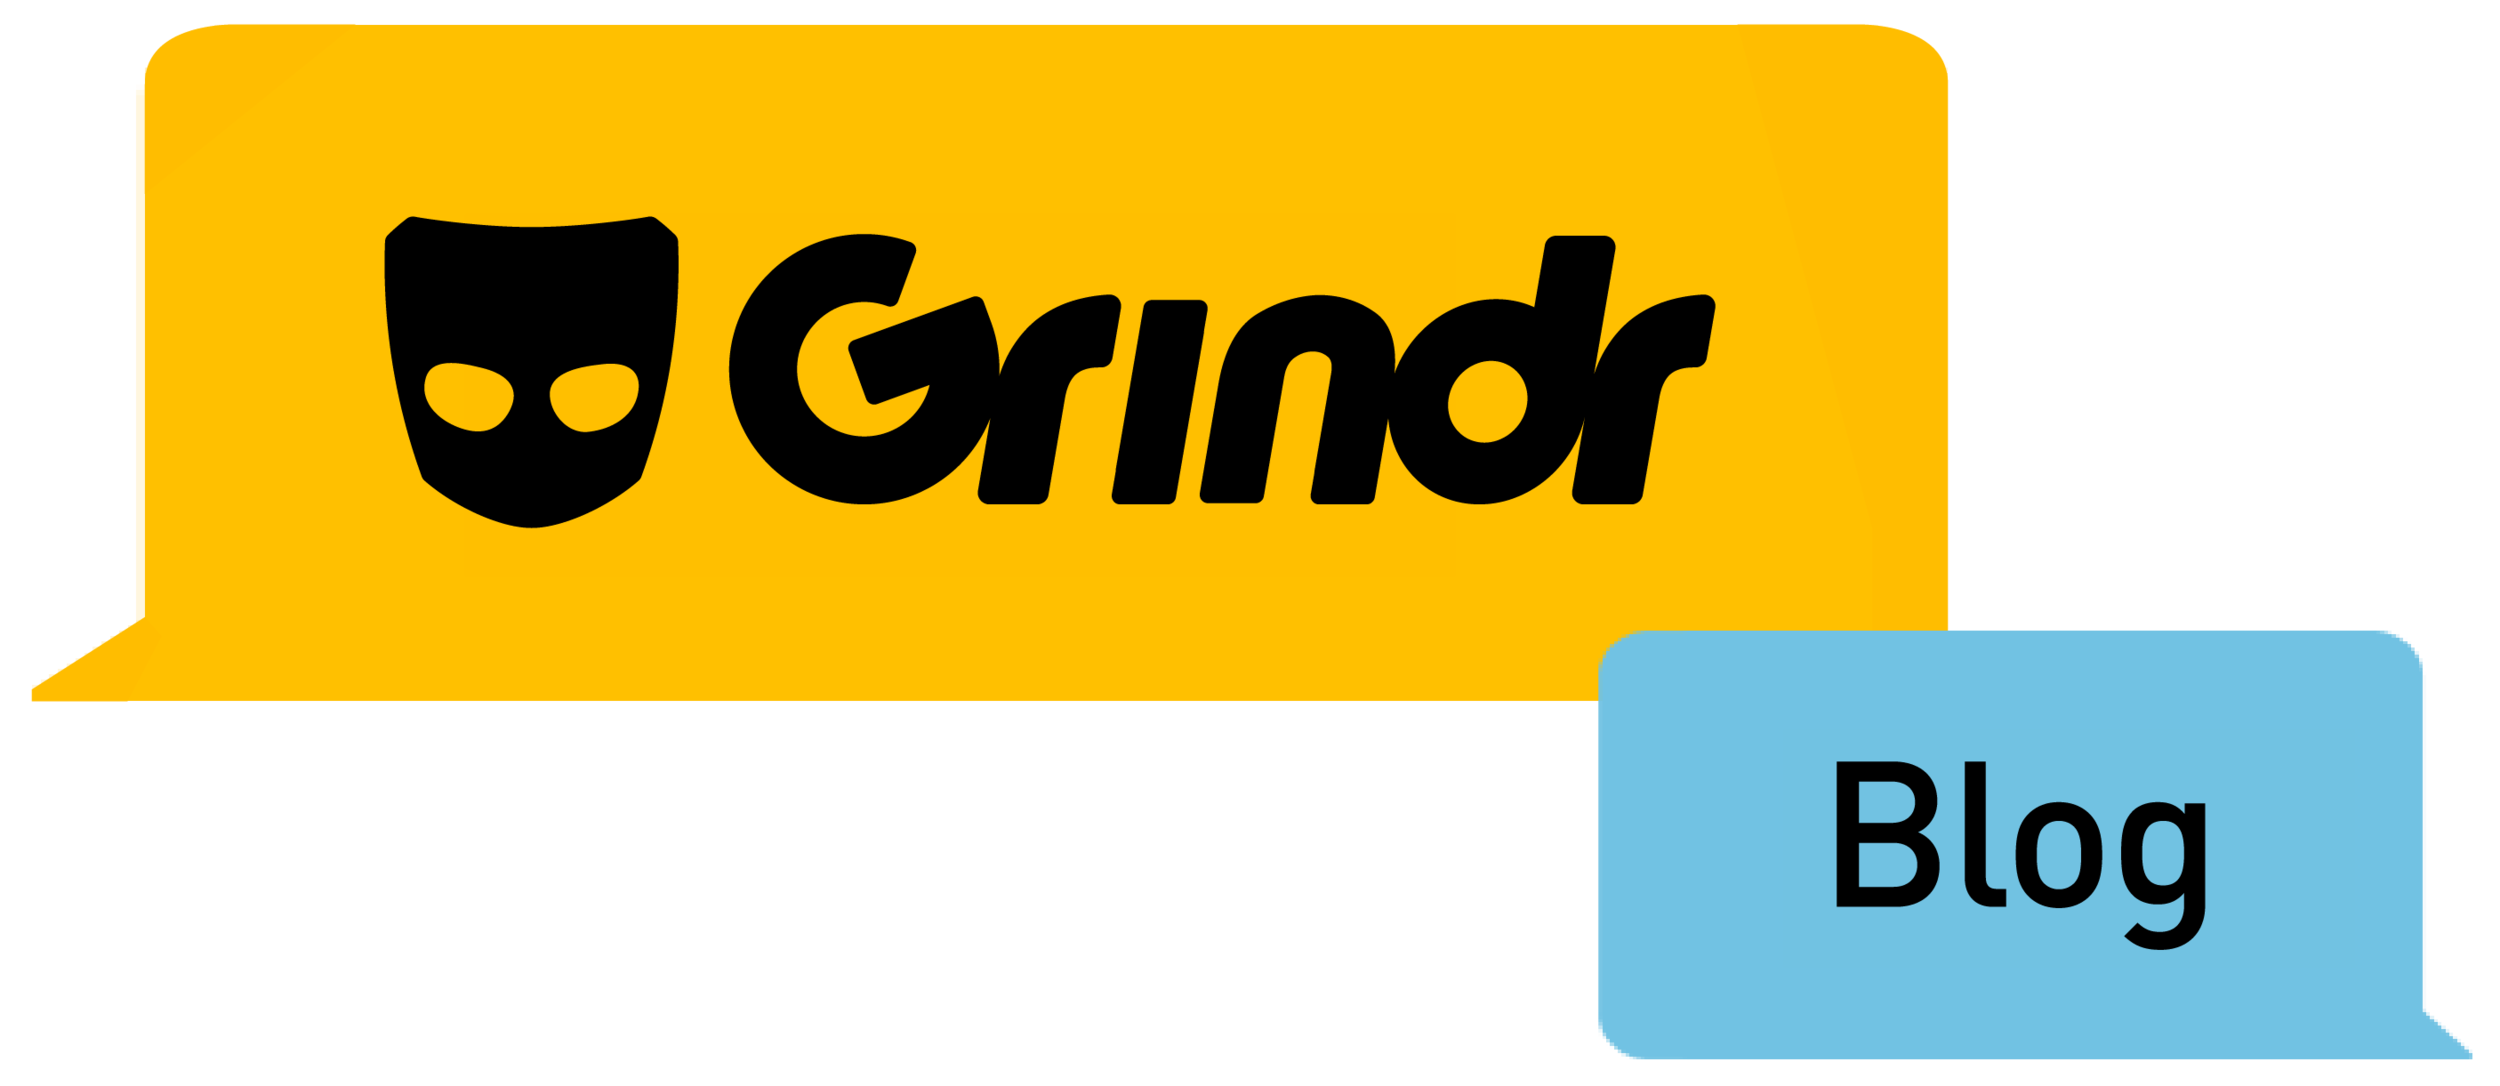 Is faces fresh what grindr An Ethnography